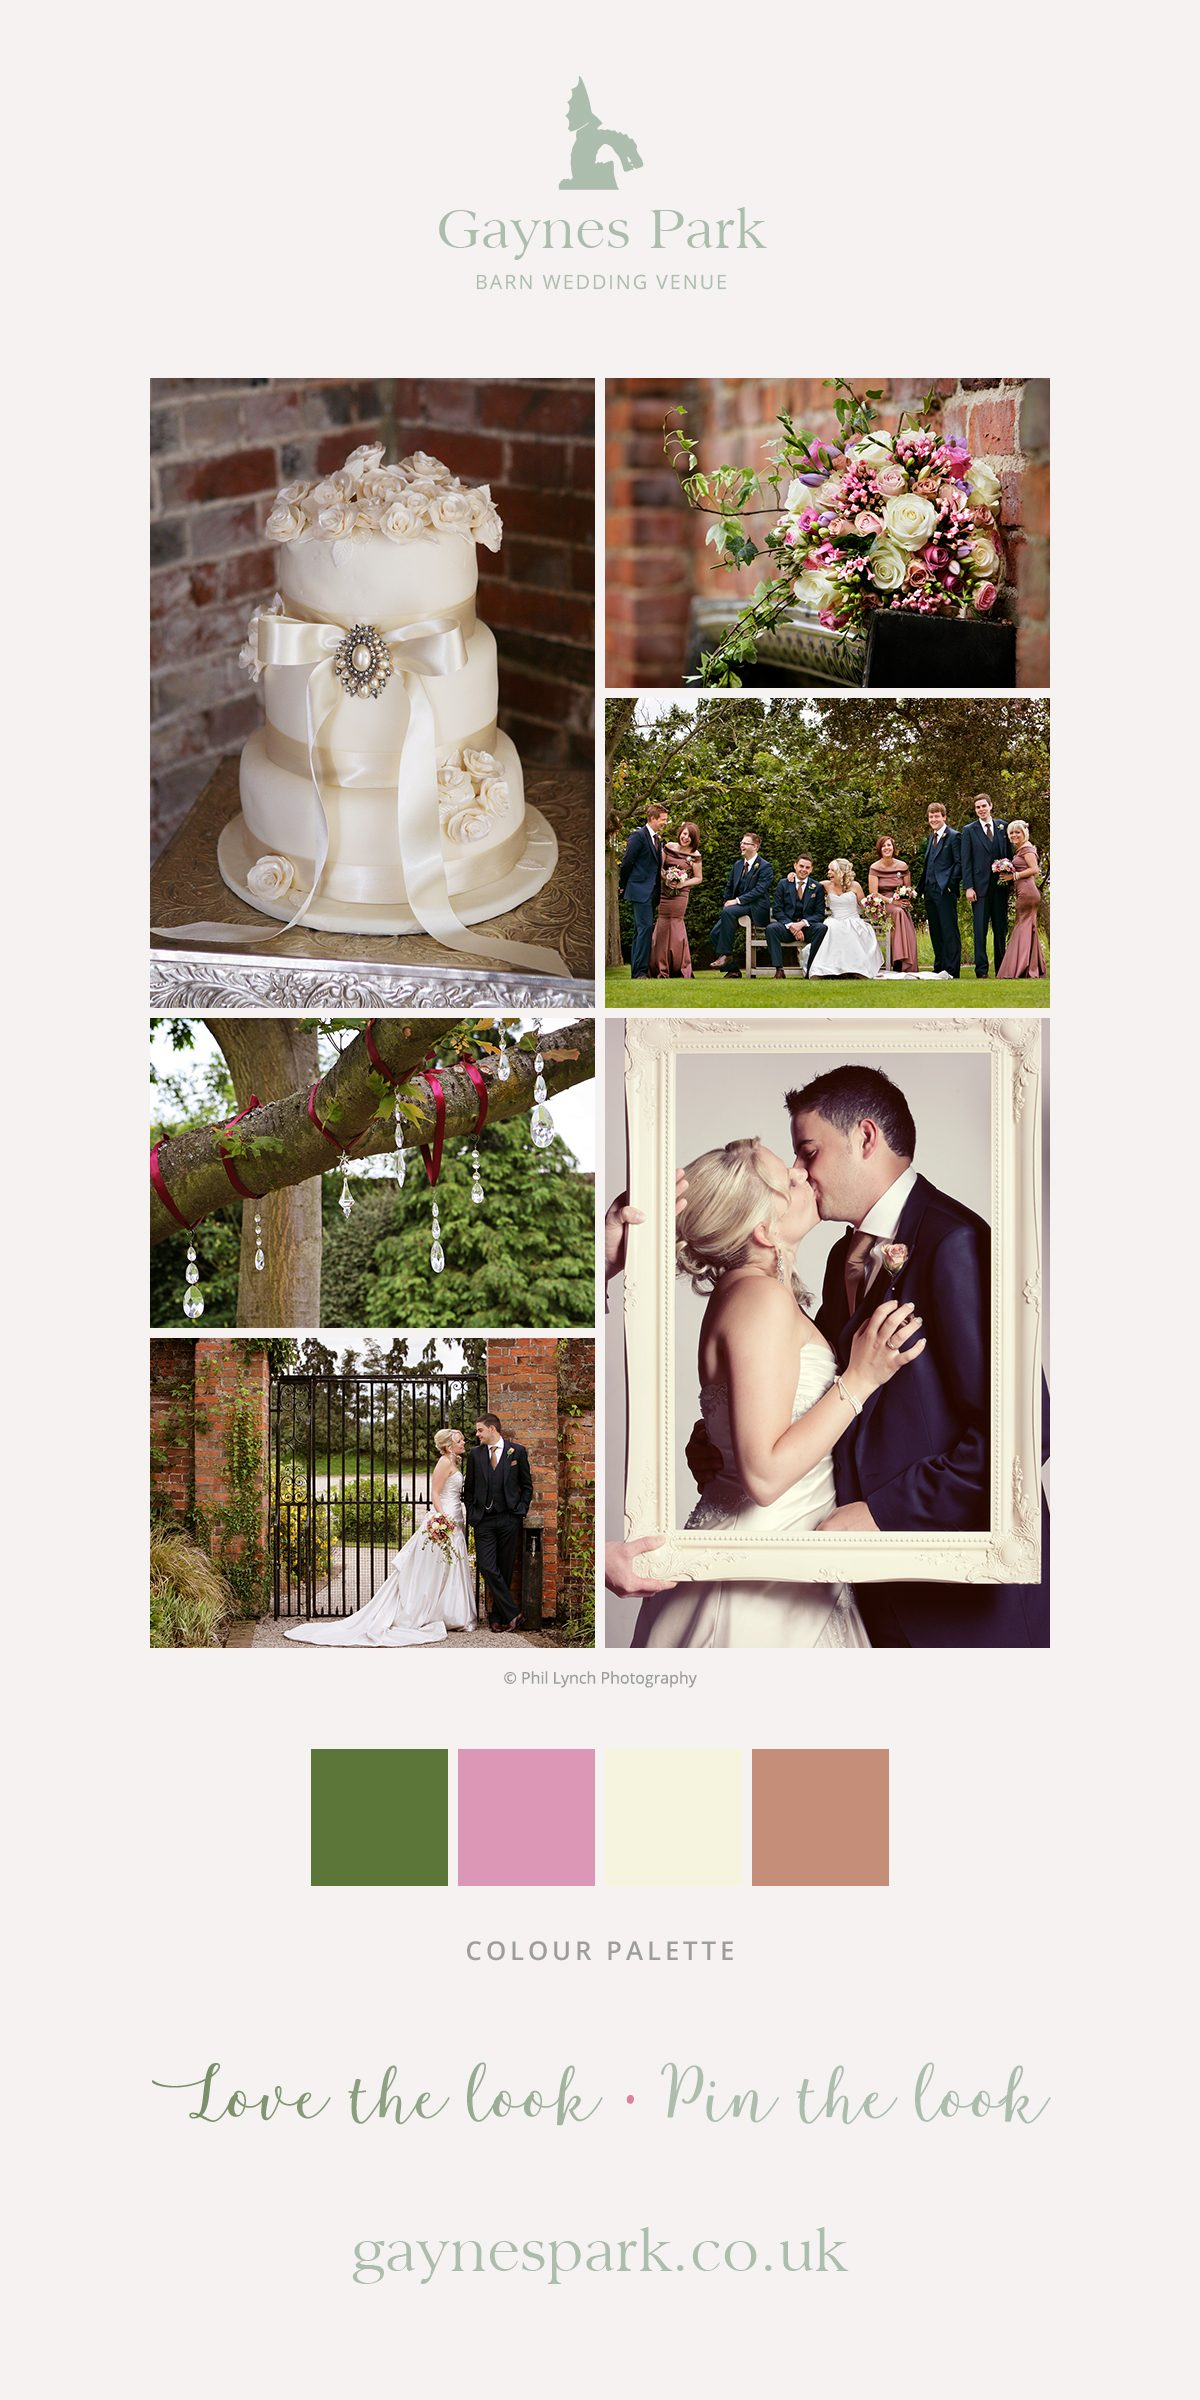 Sallie and Andy's real life wedding at Gaynes Park